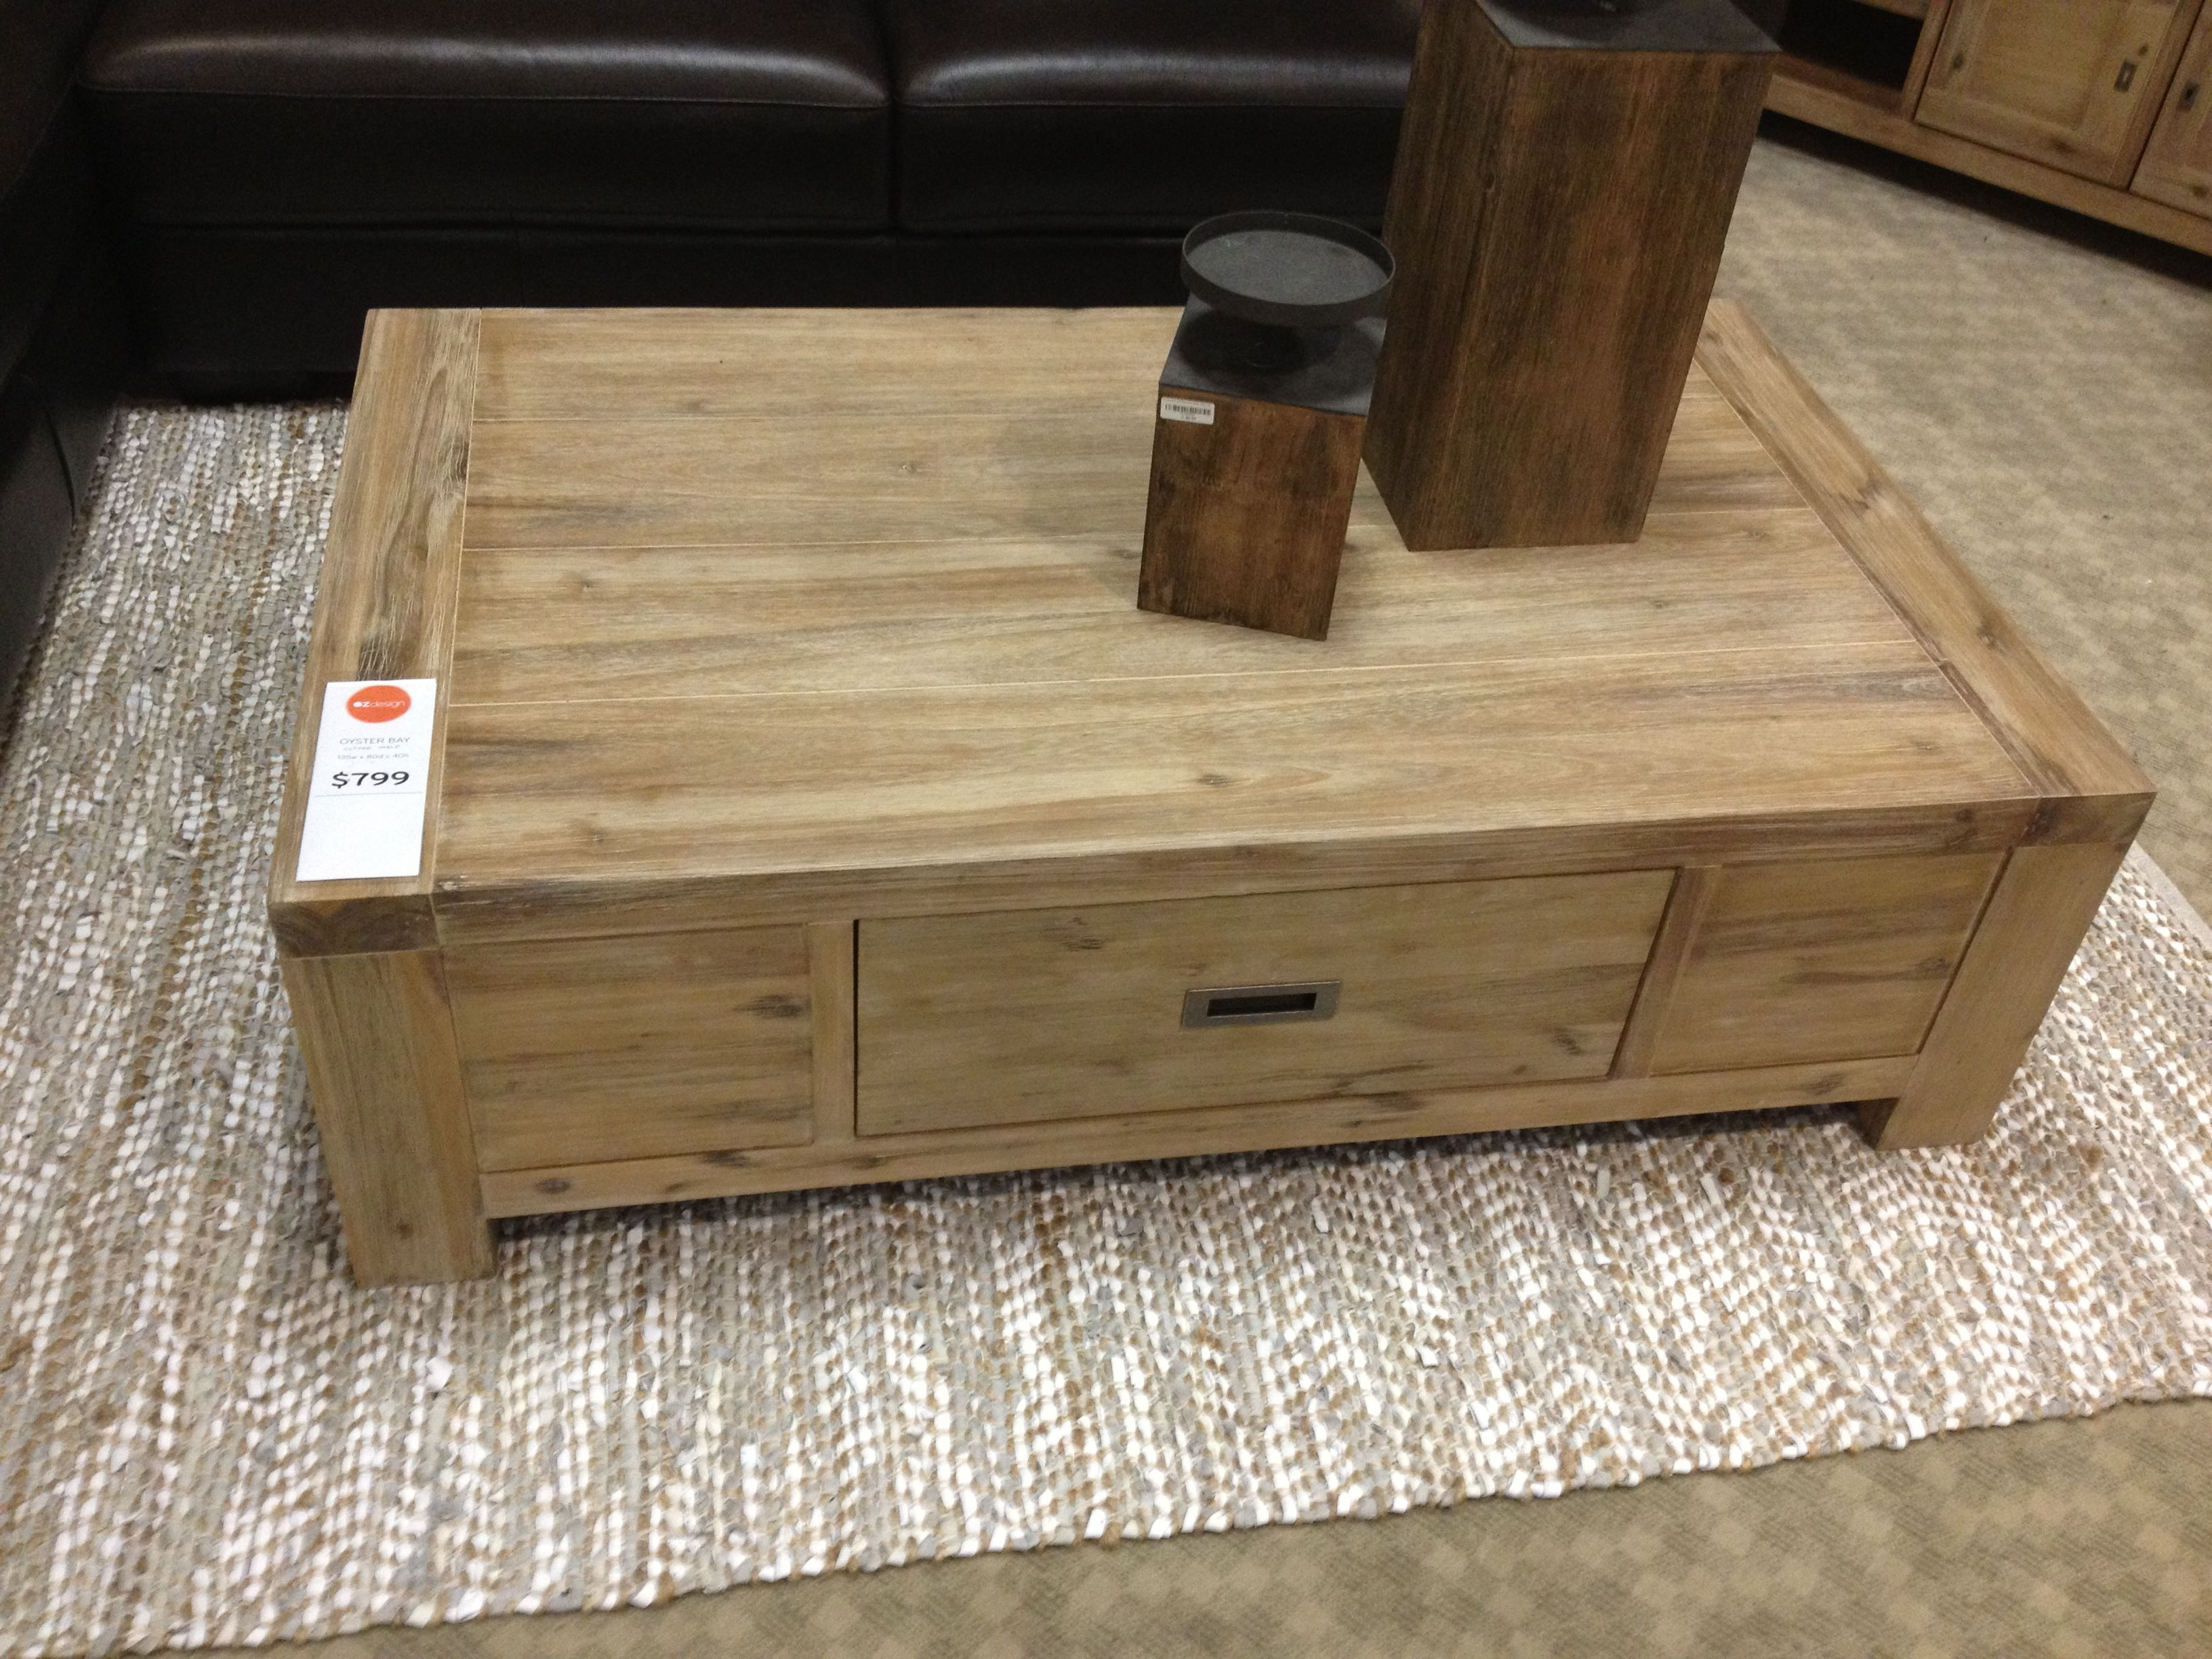 Oyster bay coffee table from oz design furniture shopping oyster bay coffee table from oz design geotapseo Choice Image